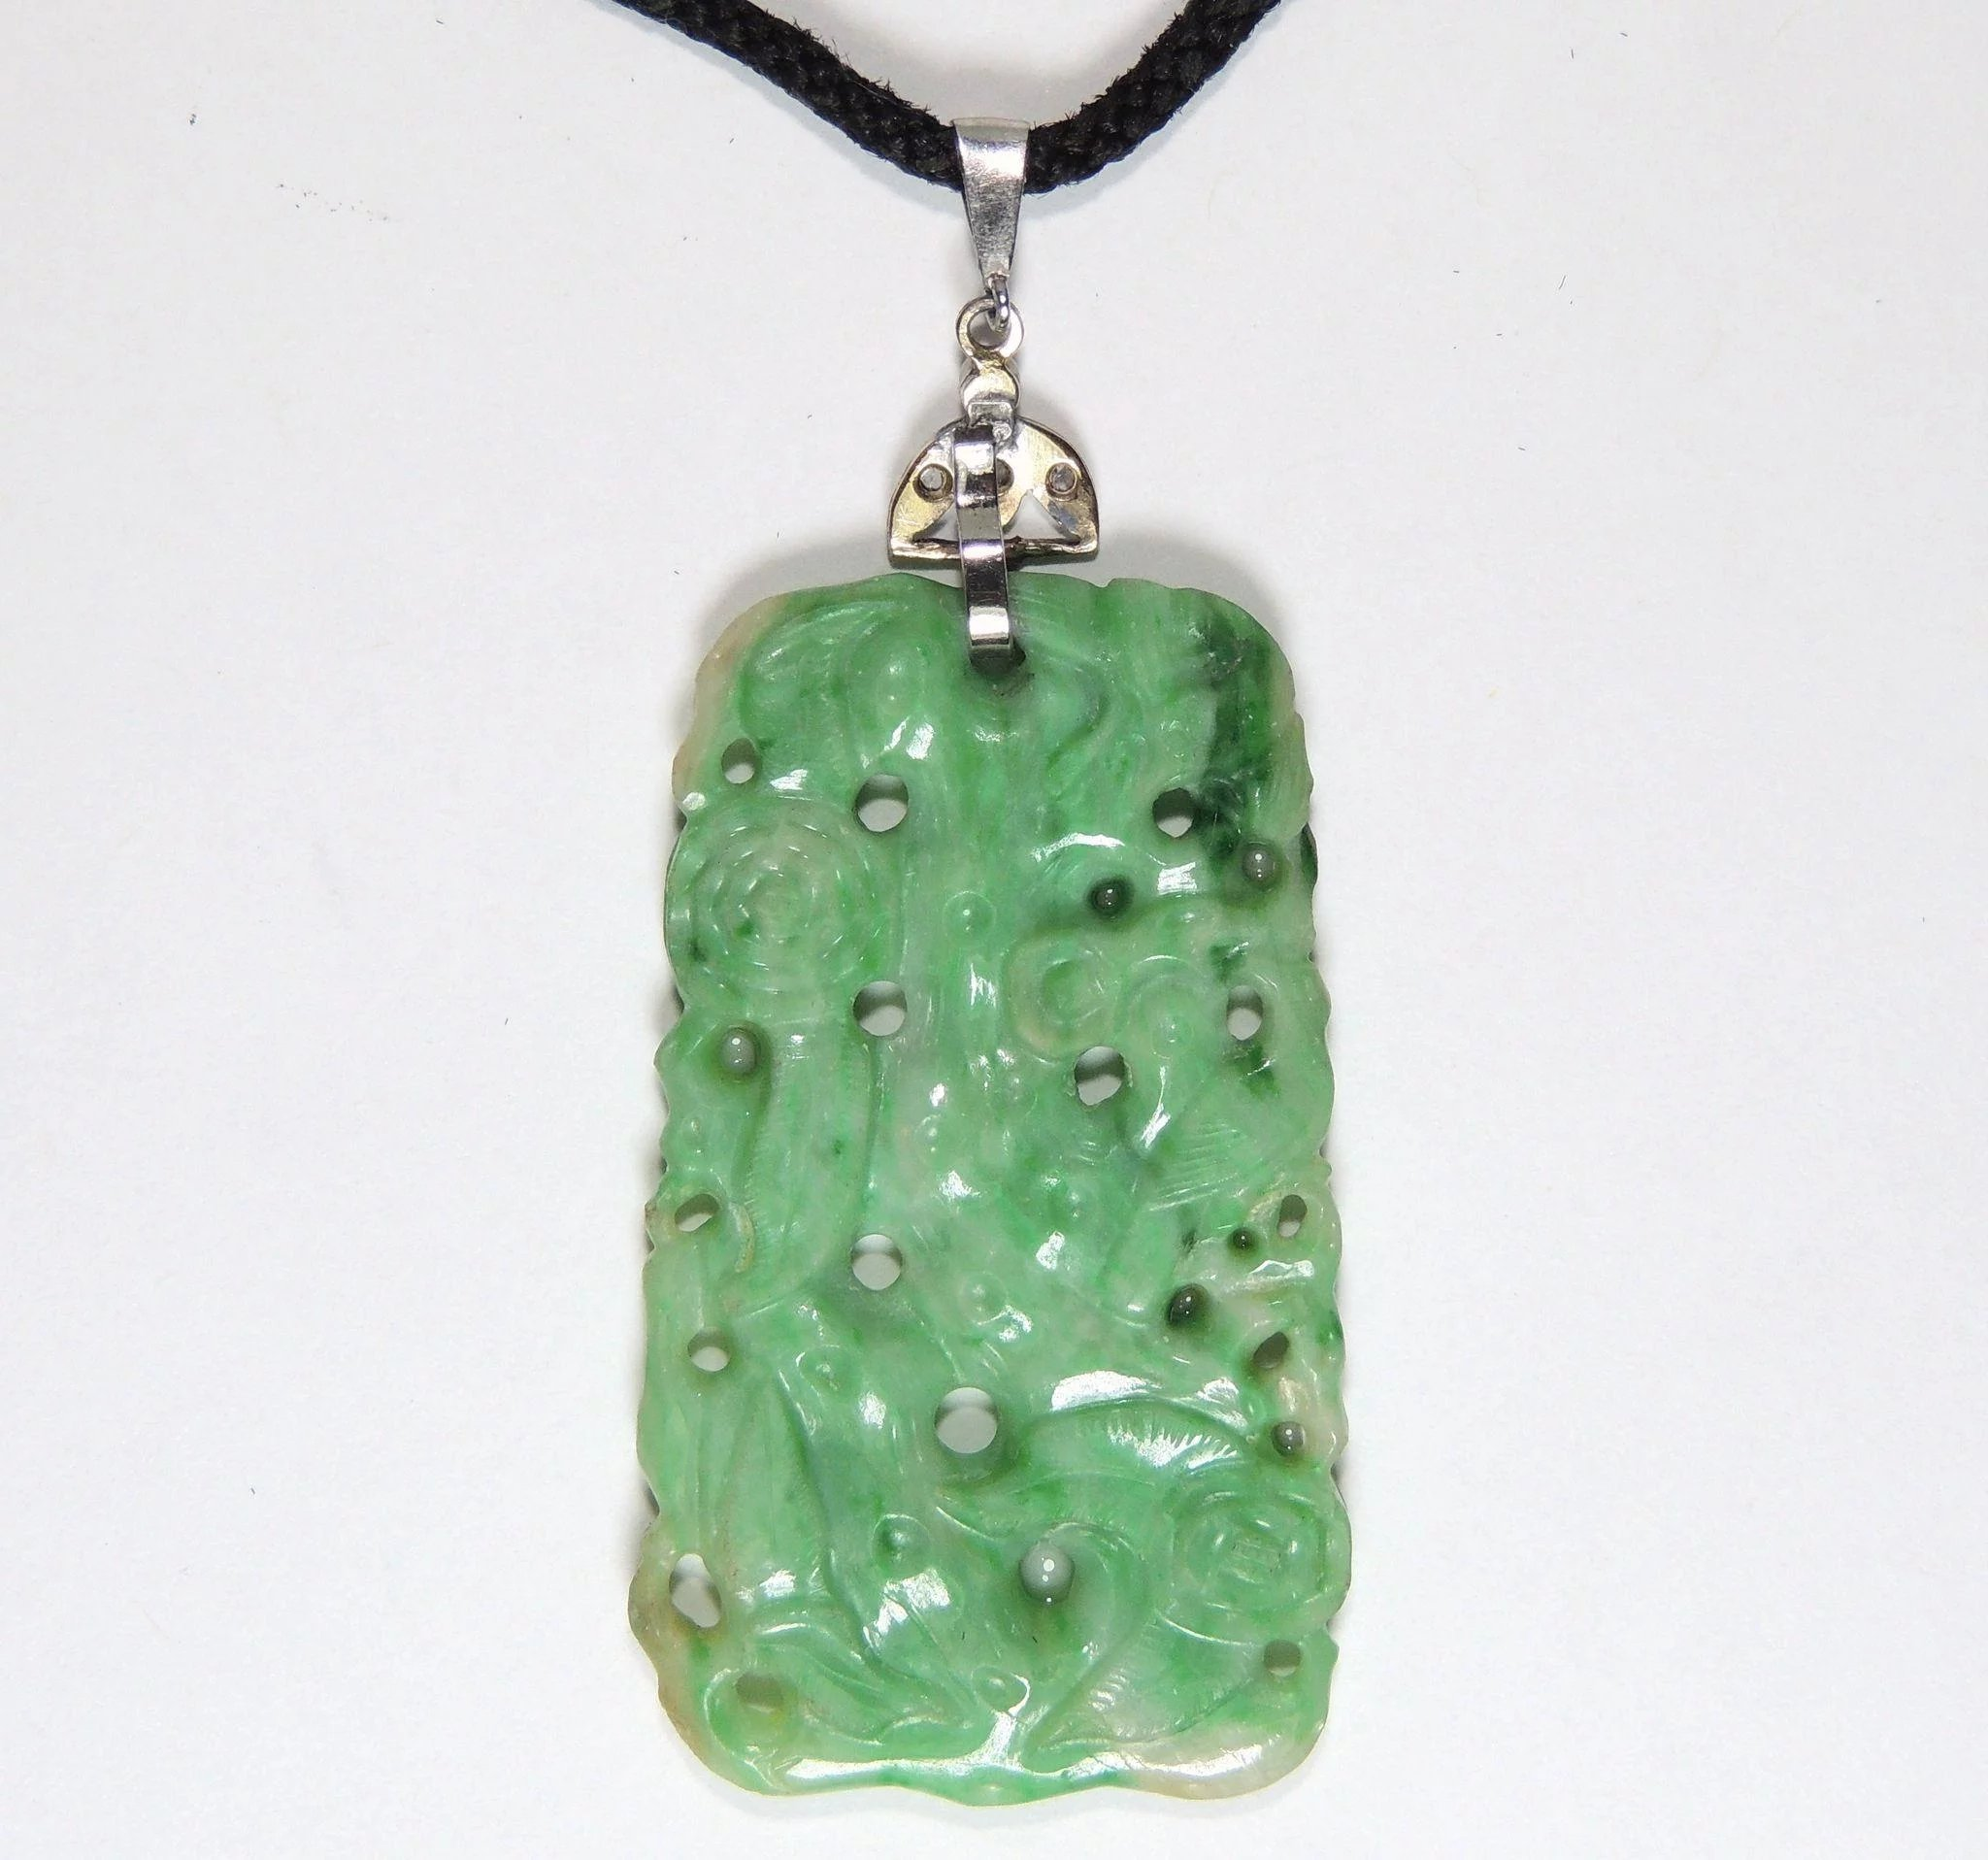 ru img yi jade unique carved hand necklace pendant tiger knotted cord green amulet with